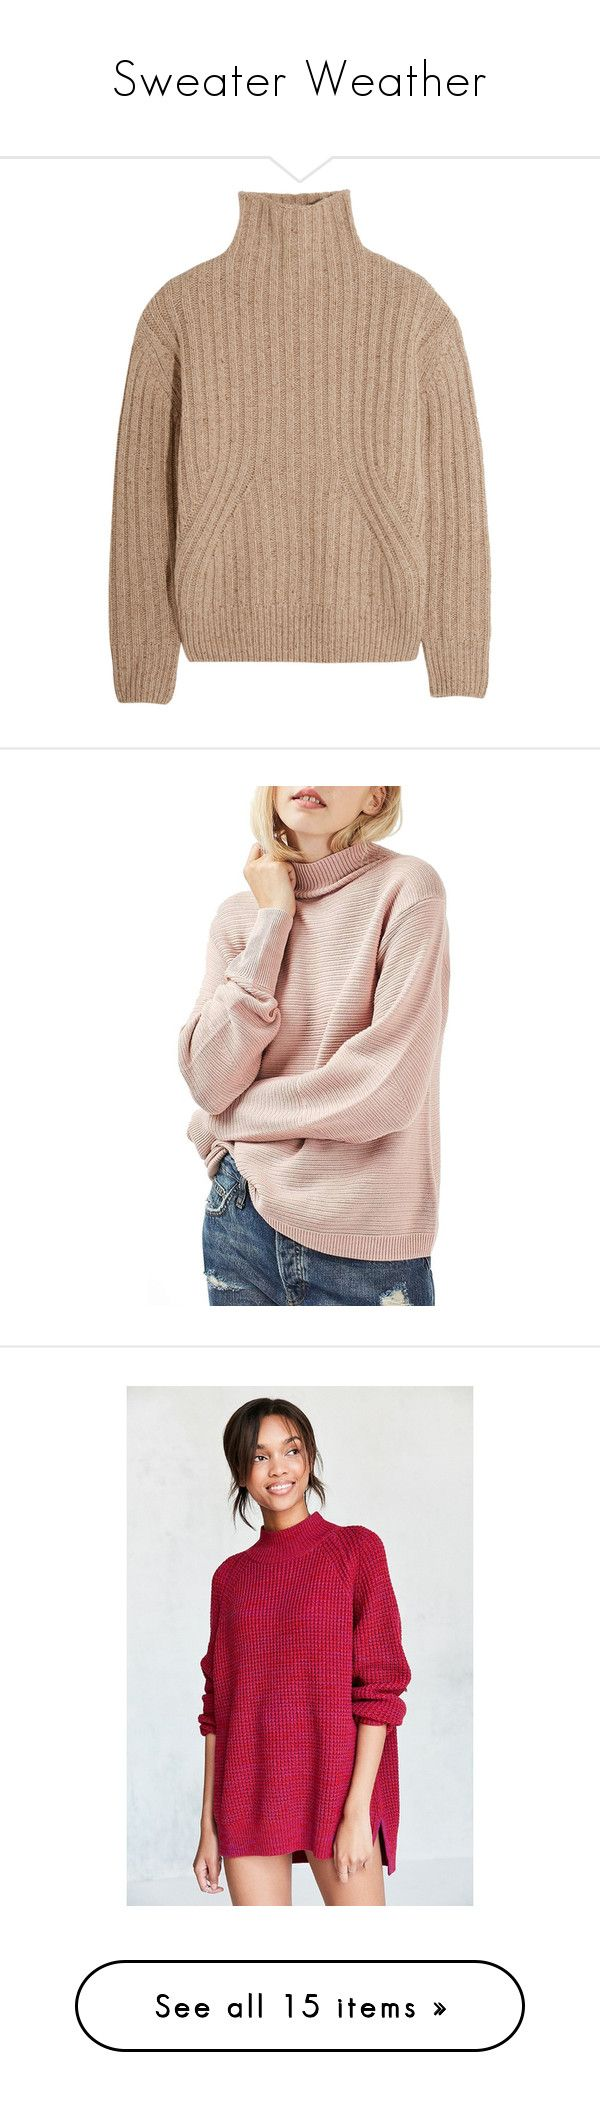 """Sweater Weather"" by marinavl ❤ liked on Polyvore featuring tops, sweaters, beige, jumpers, ribbed turtleneck top, turtle neck jumper, chunky sweater, beige turtleneck, wool blend sweater and pink"